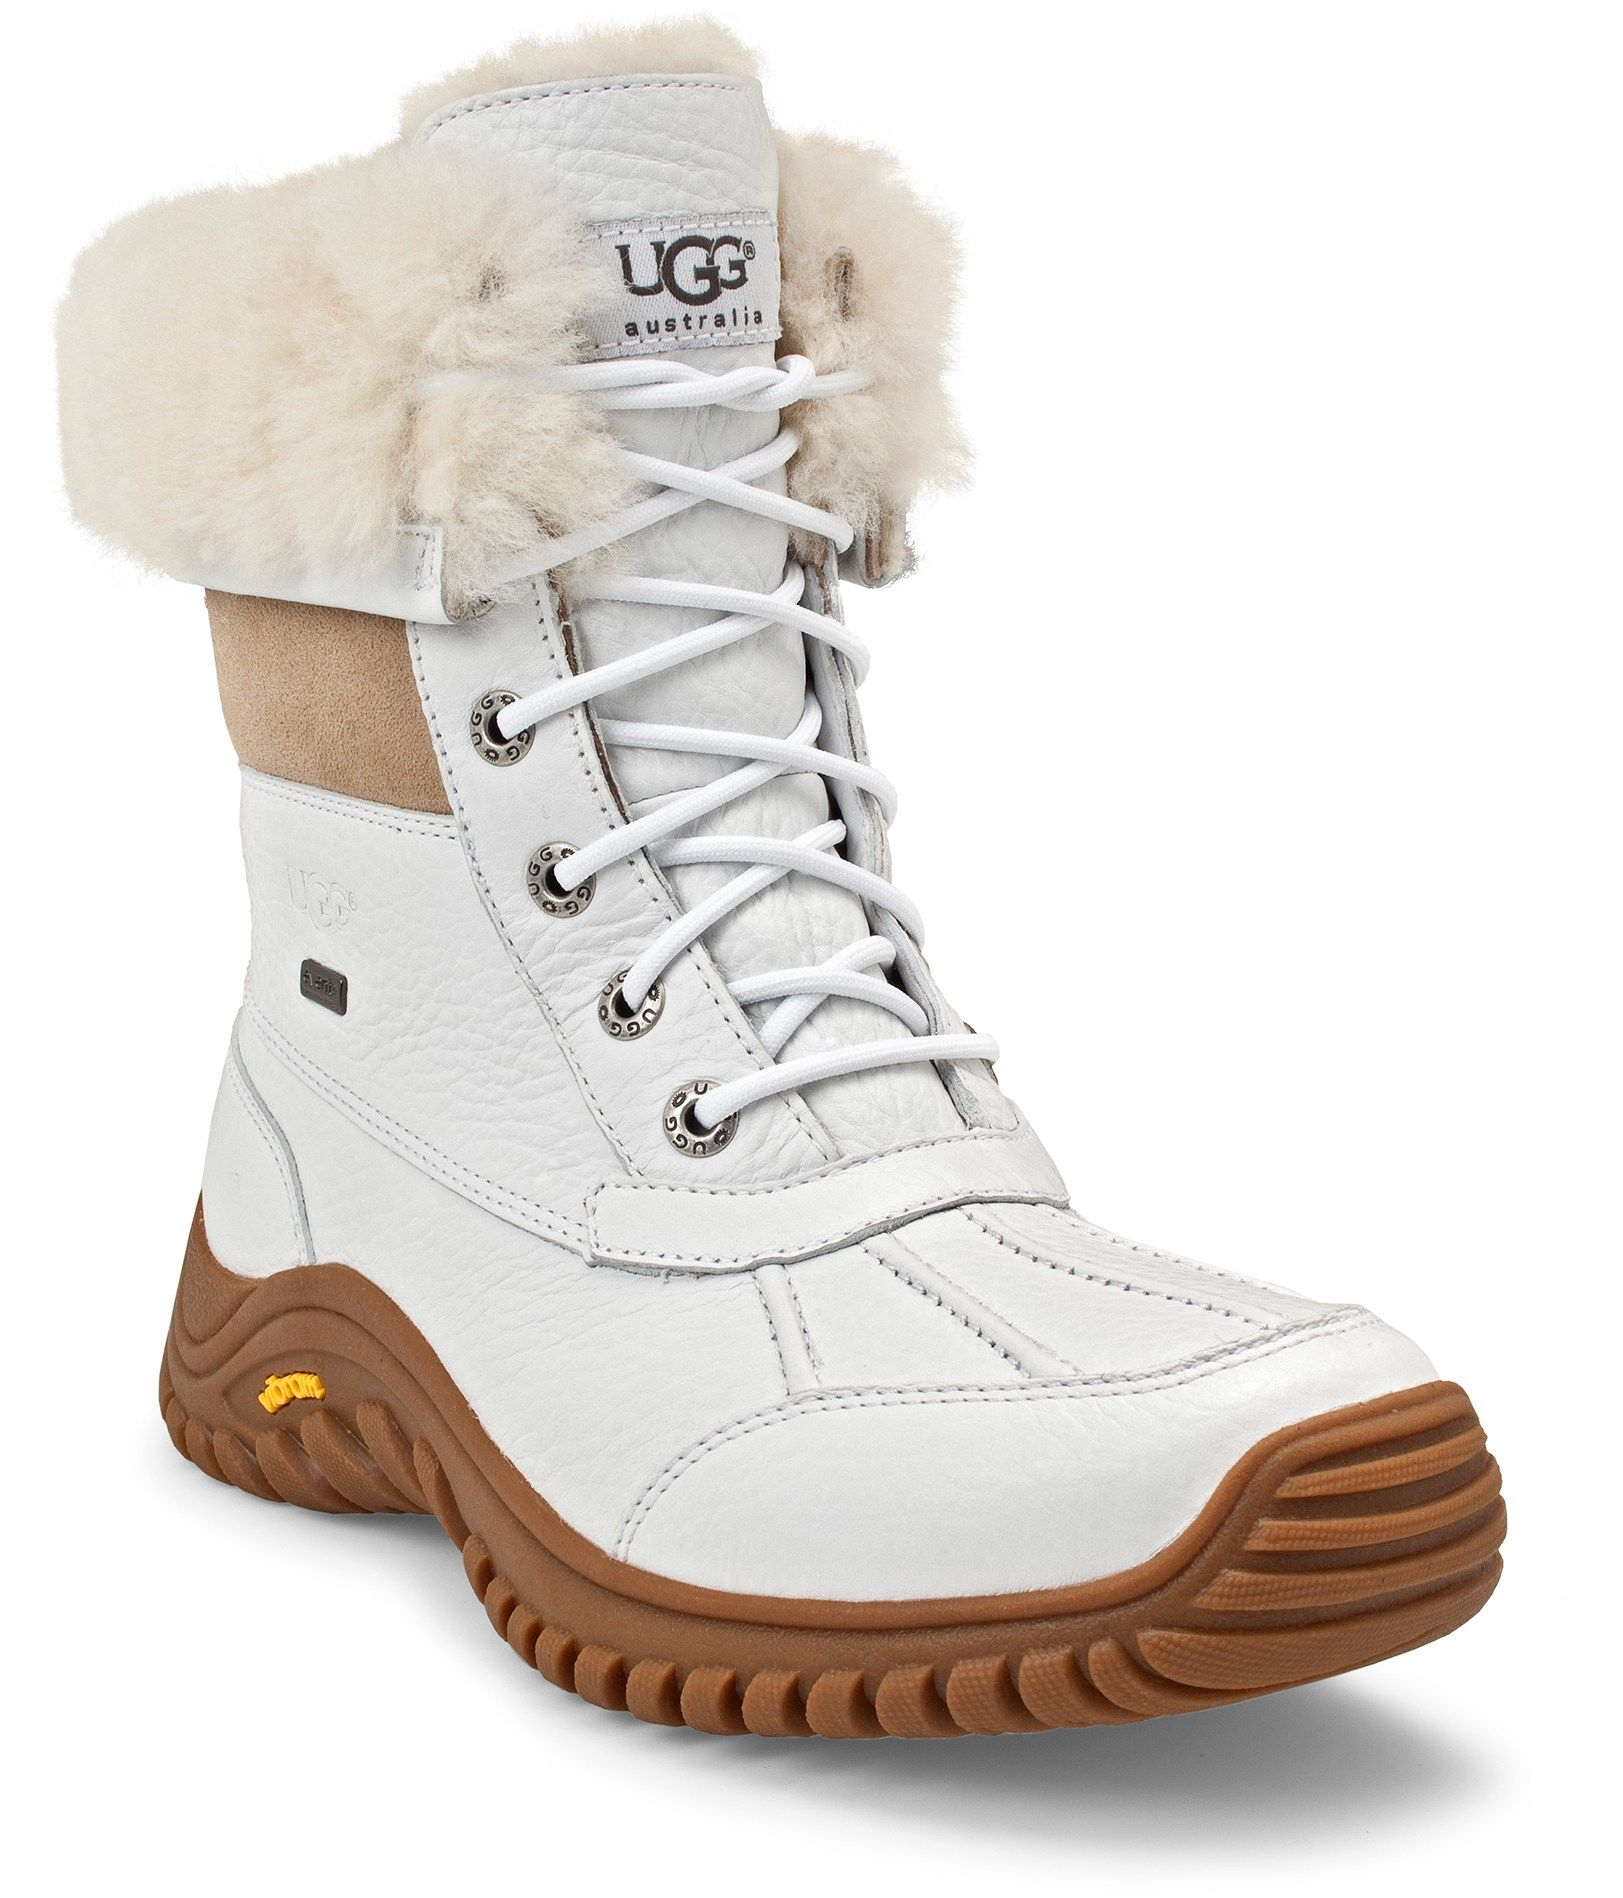 2d572962049 UGG Adirondack II Winter Boots. Might be the first uggs I have ever liked.